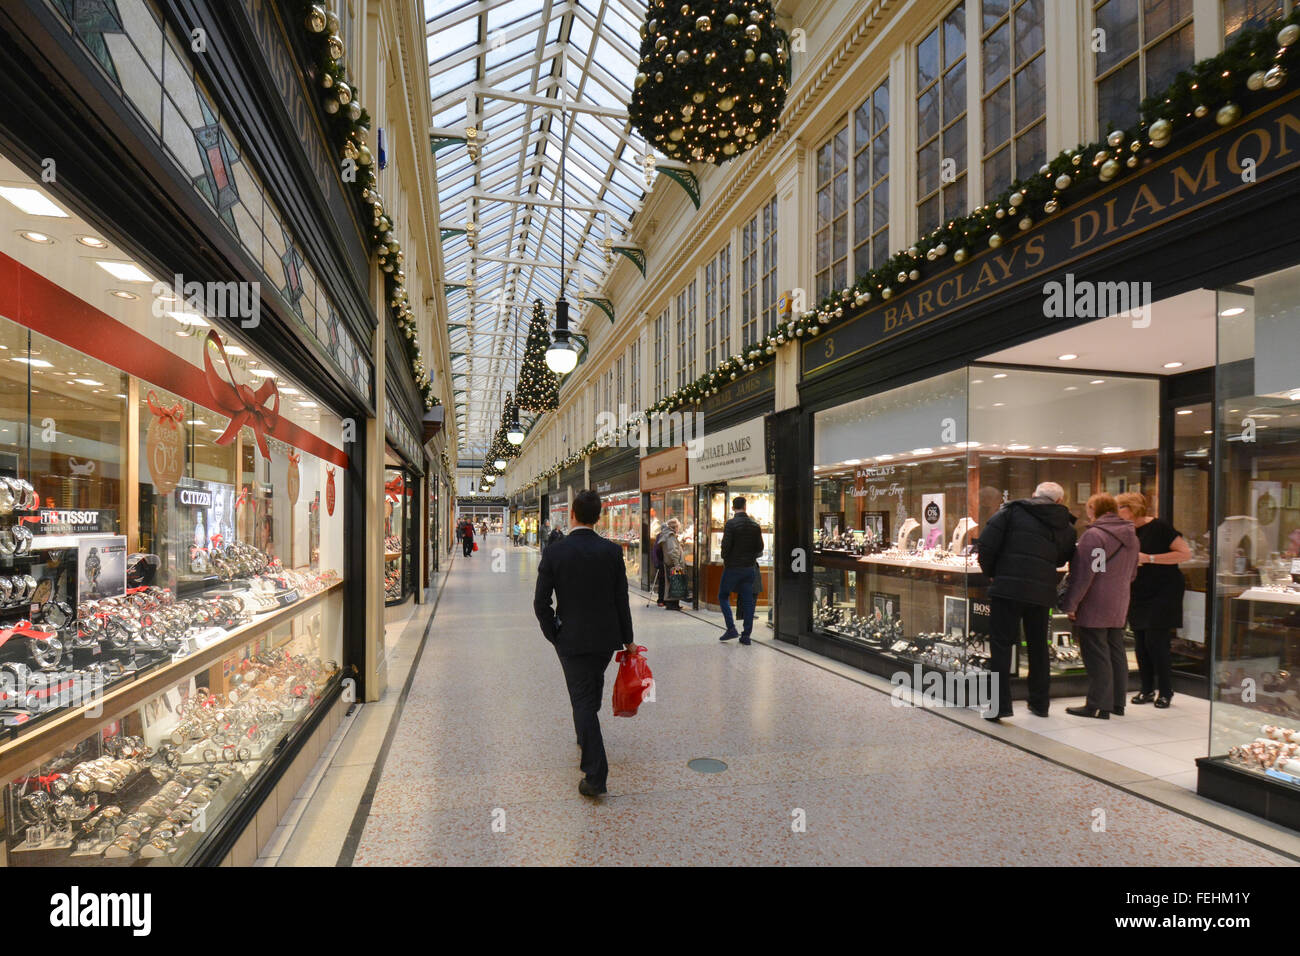 Argyll Arcade - which contains more than 30 jewellers and diamond merchants - at Christmas - Glasgow, Scotland, Stock Photo